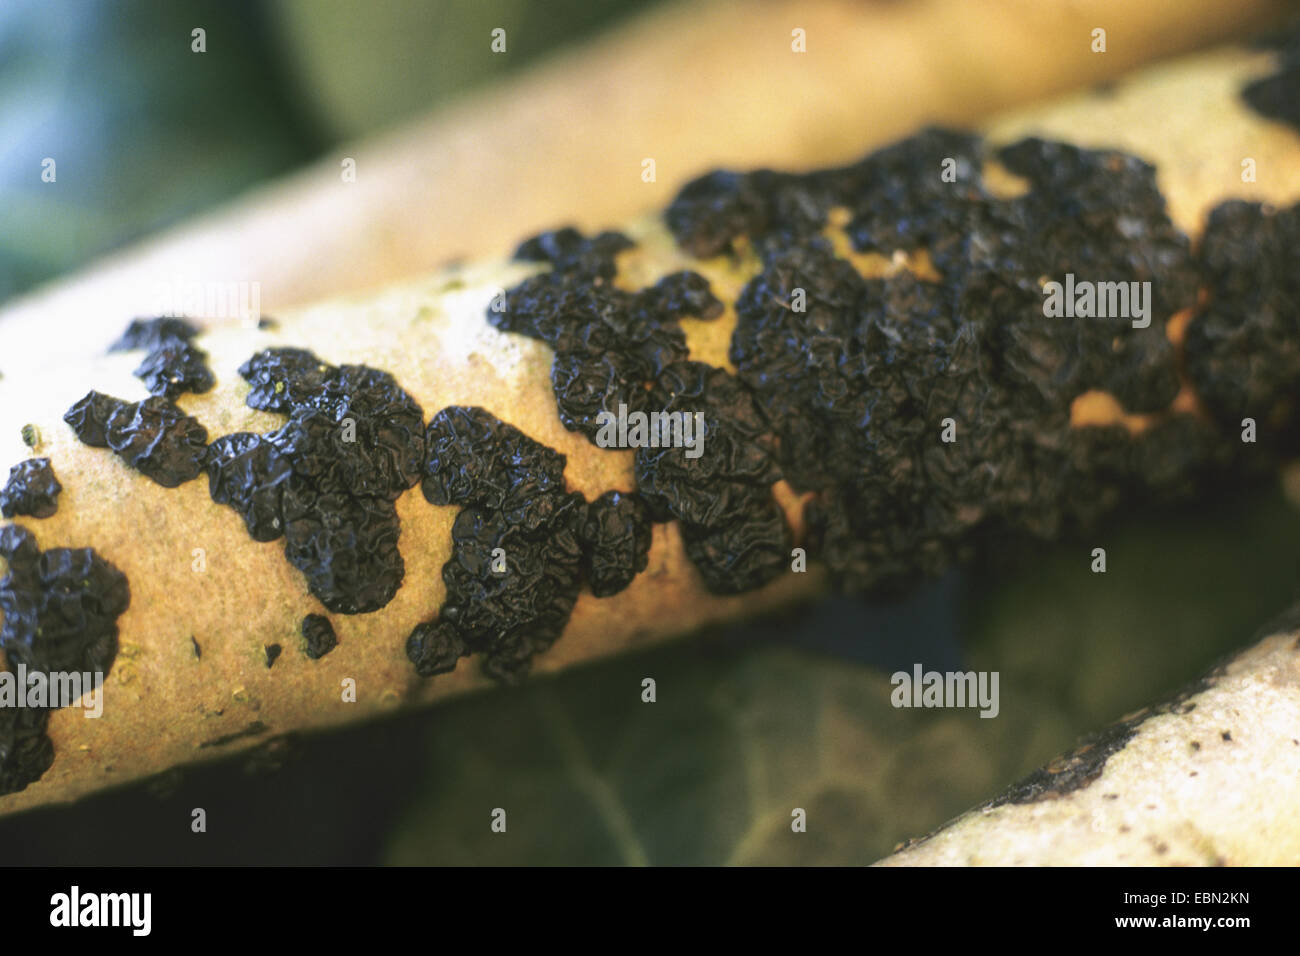 witches' butter (Exidia glandulosa, Exidia truncata), at a branch, Germany - Stock Image